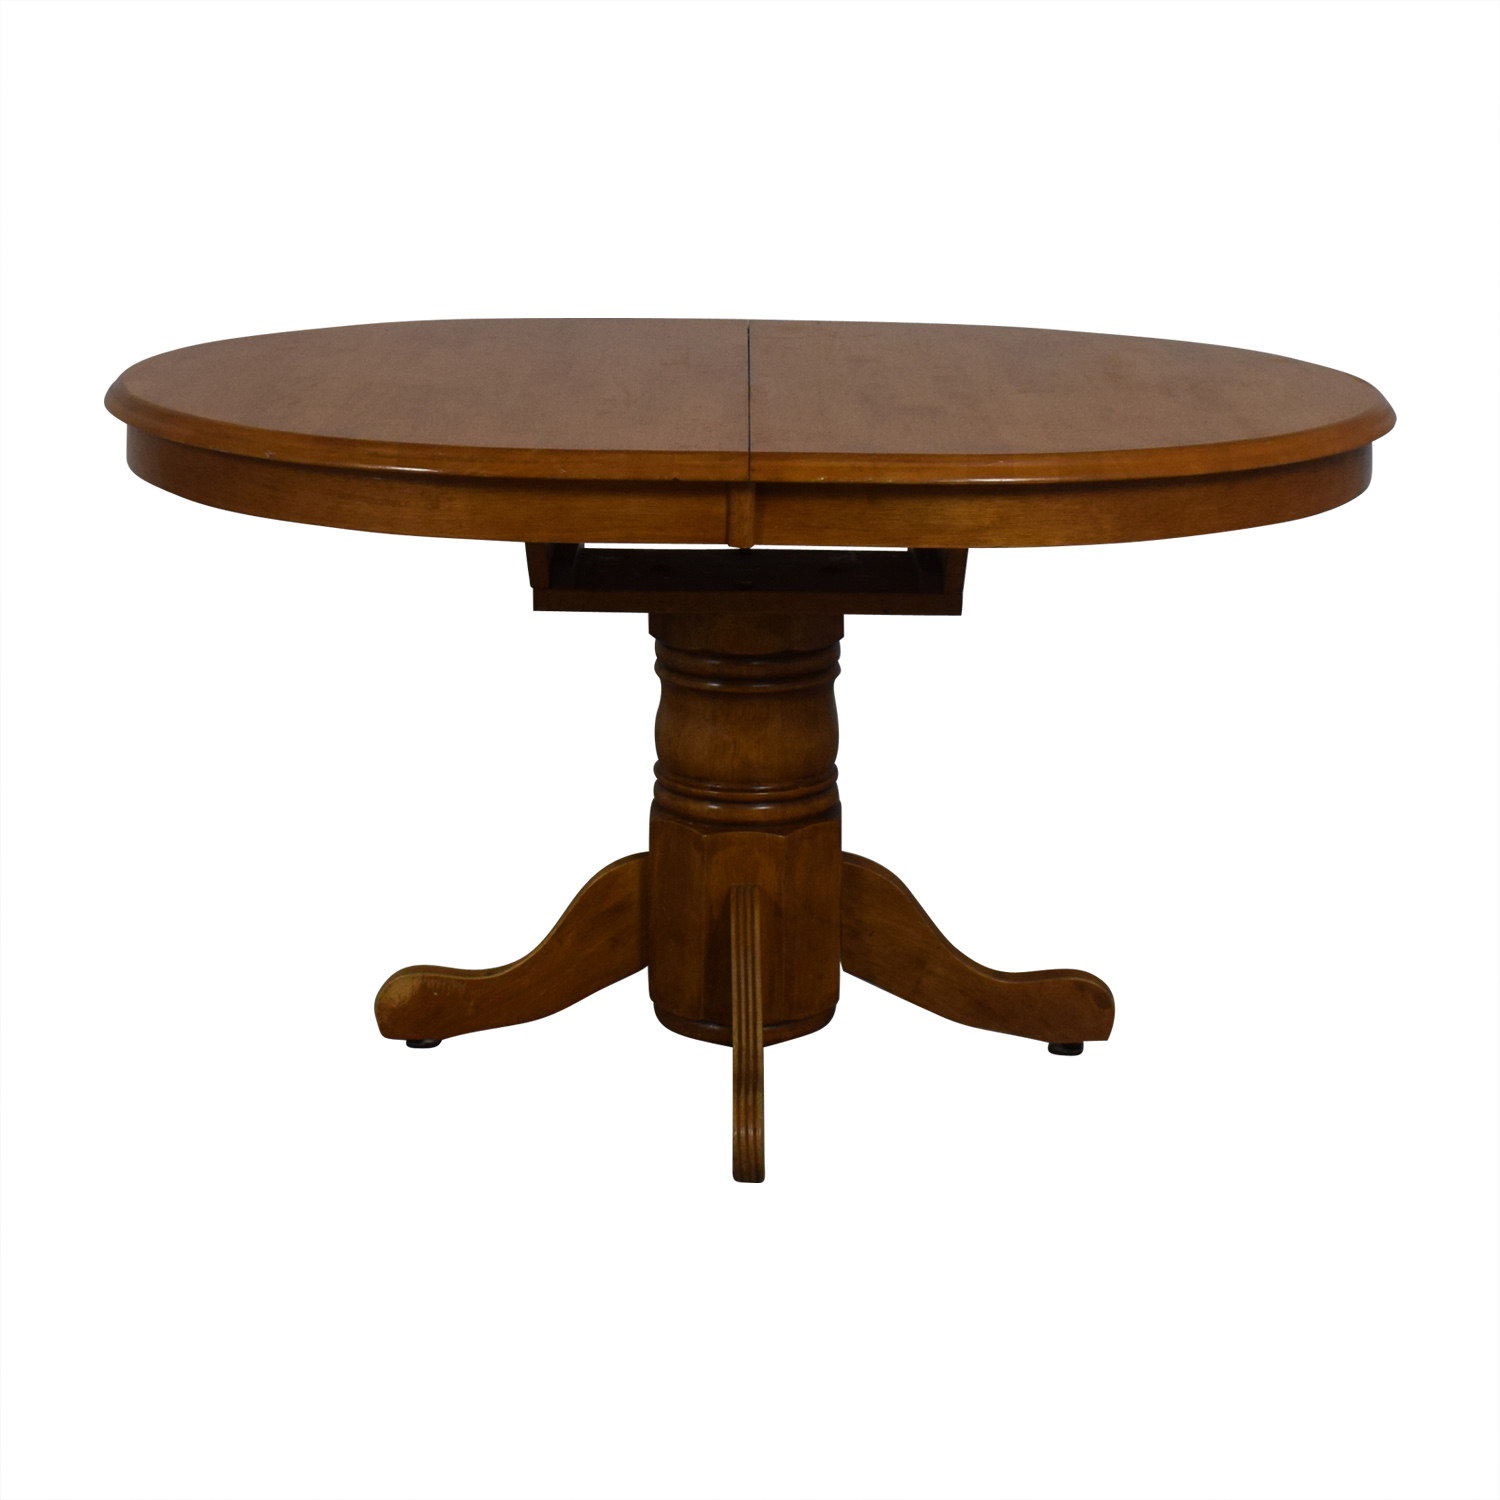 Wood Extendable Dining Table used